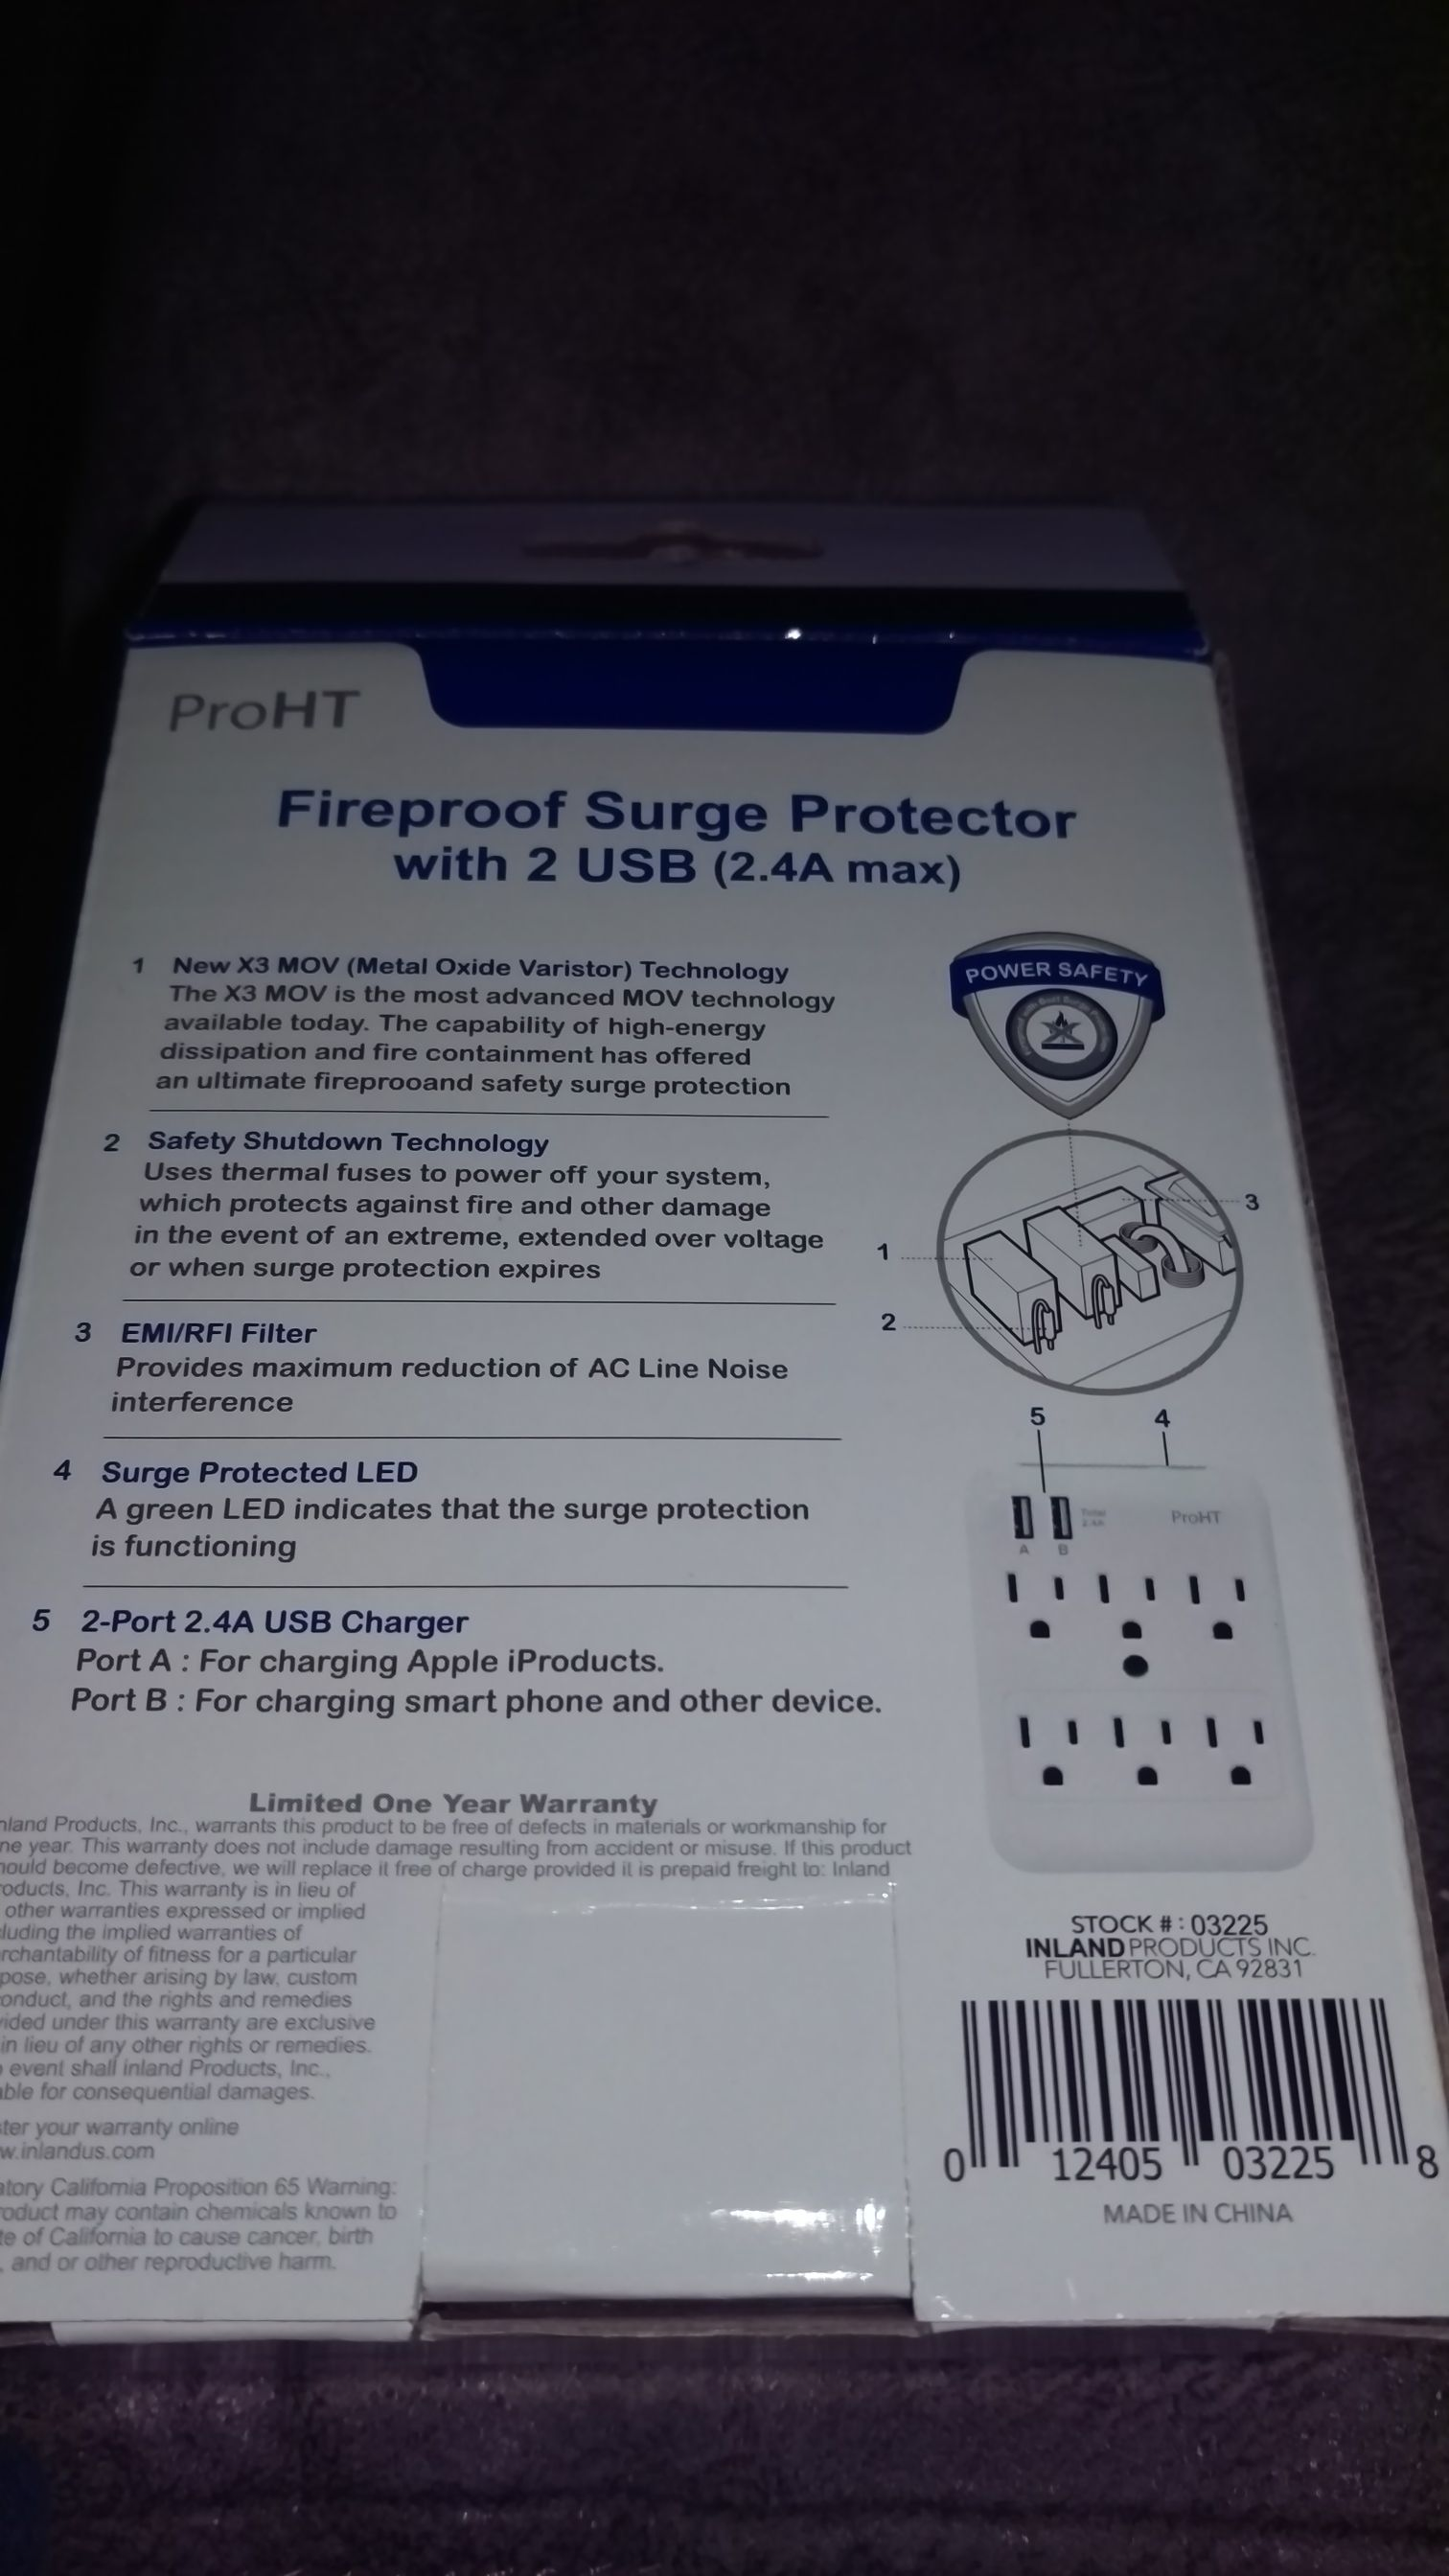 Fireproof Surge Protector with 2 USB Ornament - ProHT (2018) back image (back cover, second image)